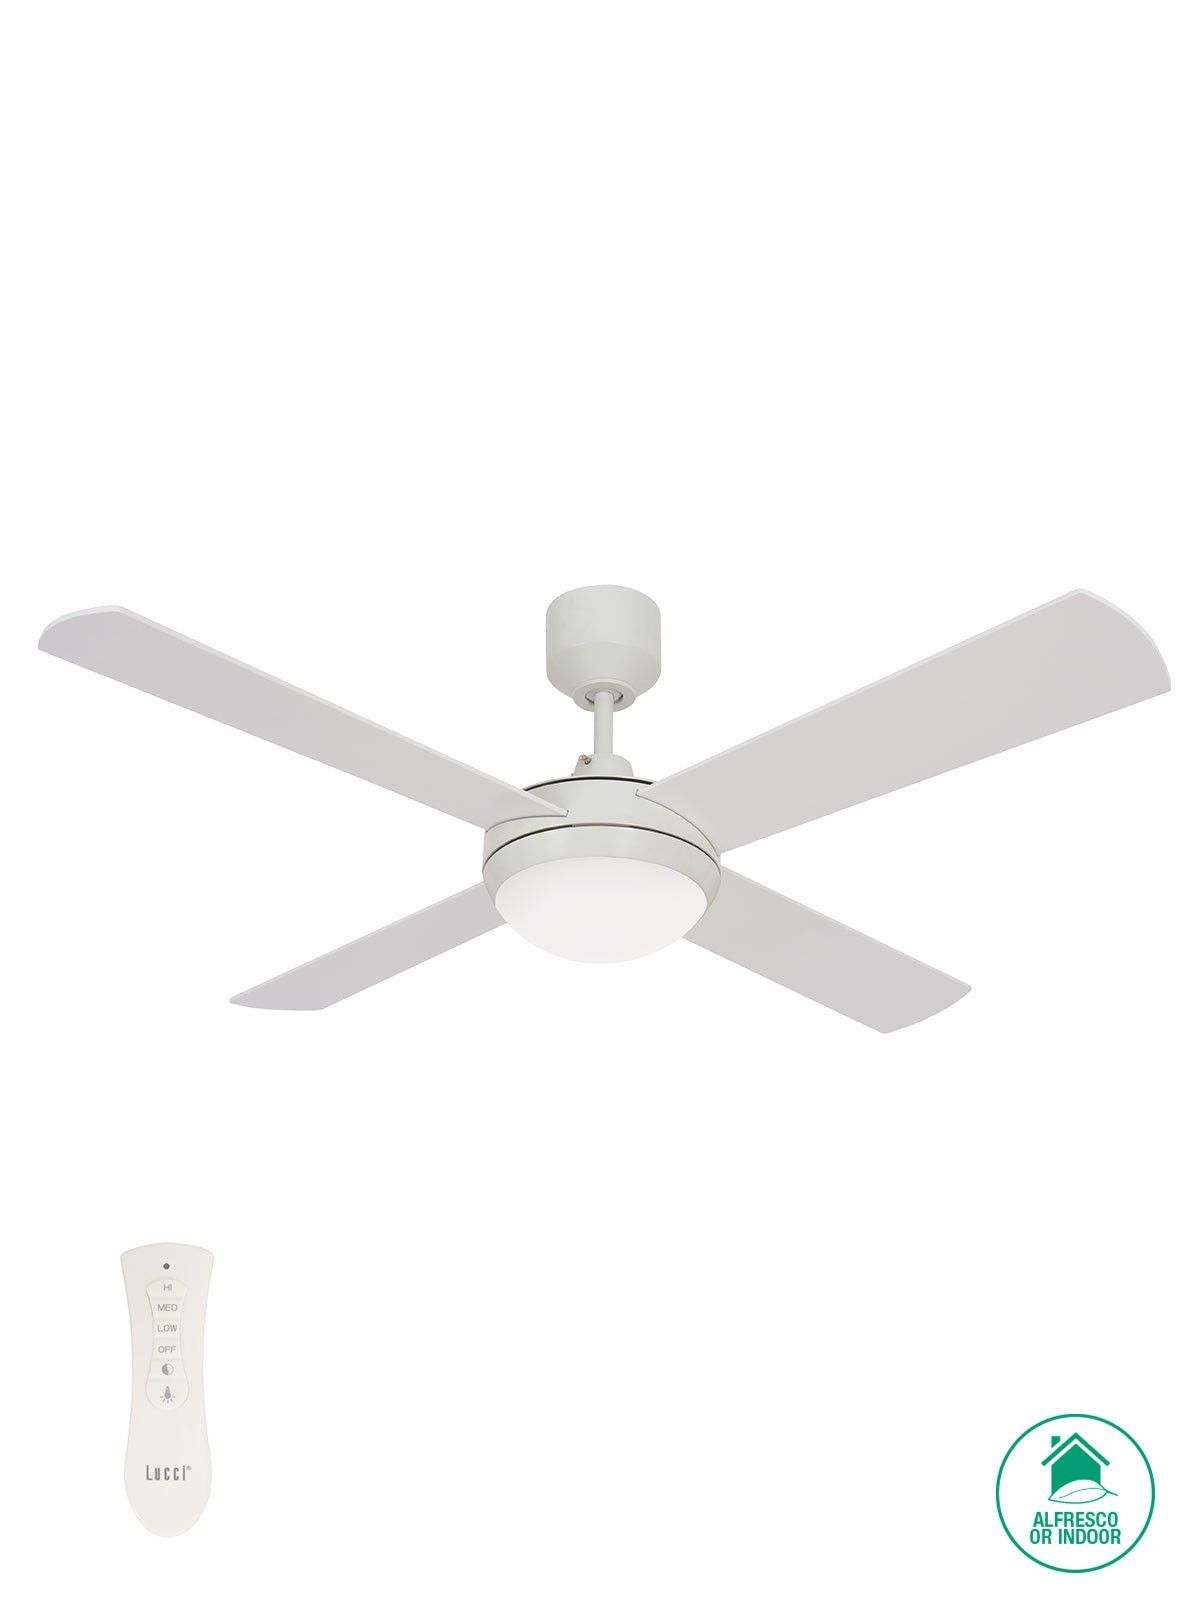 Futura Eco 132cm Fan And Colourshift Led Light In White Ceiling